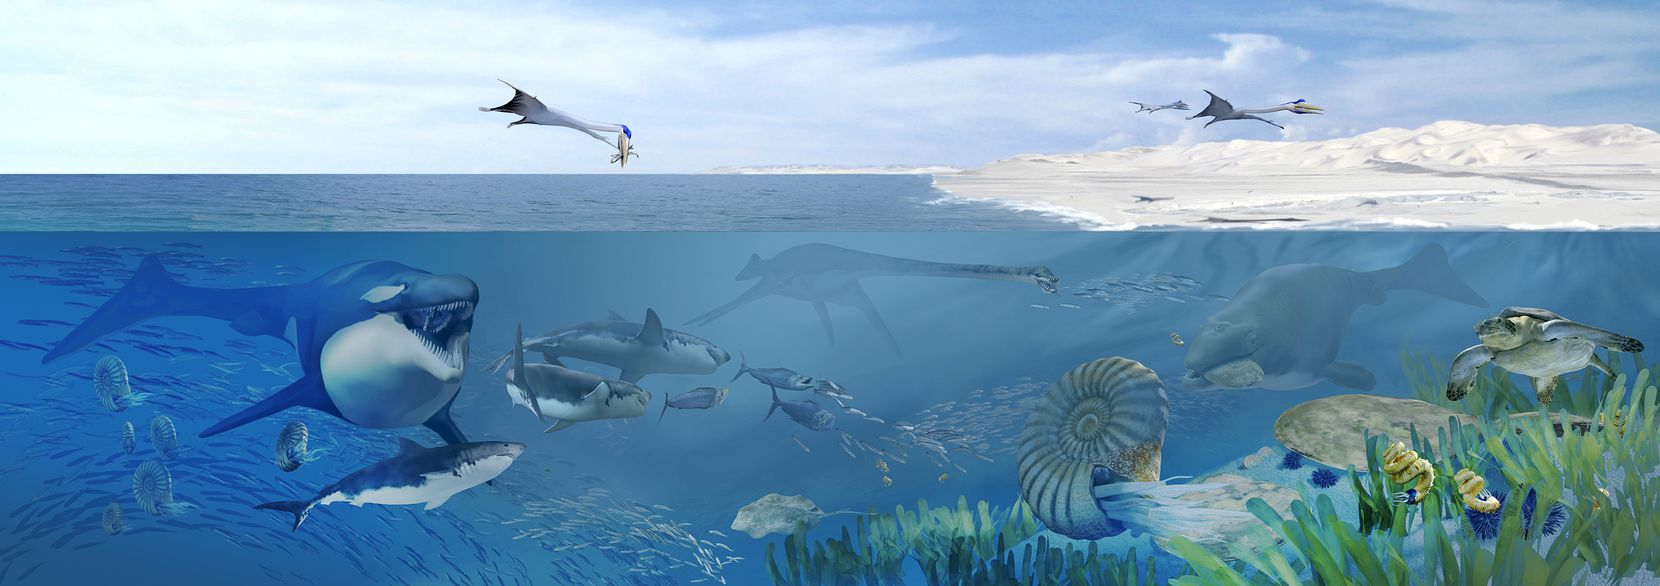 An artist'€™s rendering of Angola'€™s Cretaceous seas 72 million years ago, dominated by many species of large, carnivorous marine reptiles. If you traveled back in time to the Late Cretaceous, the water was filled with carnivorous reptiles, like mosasaurs and plesiosaurs. Even some of the sea turtles were enormous.